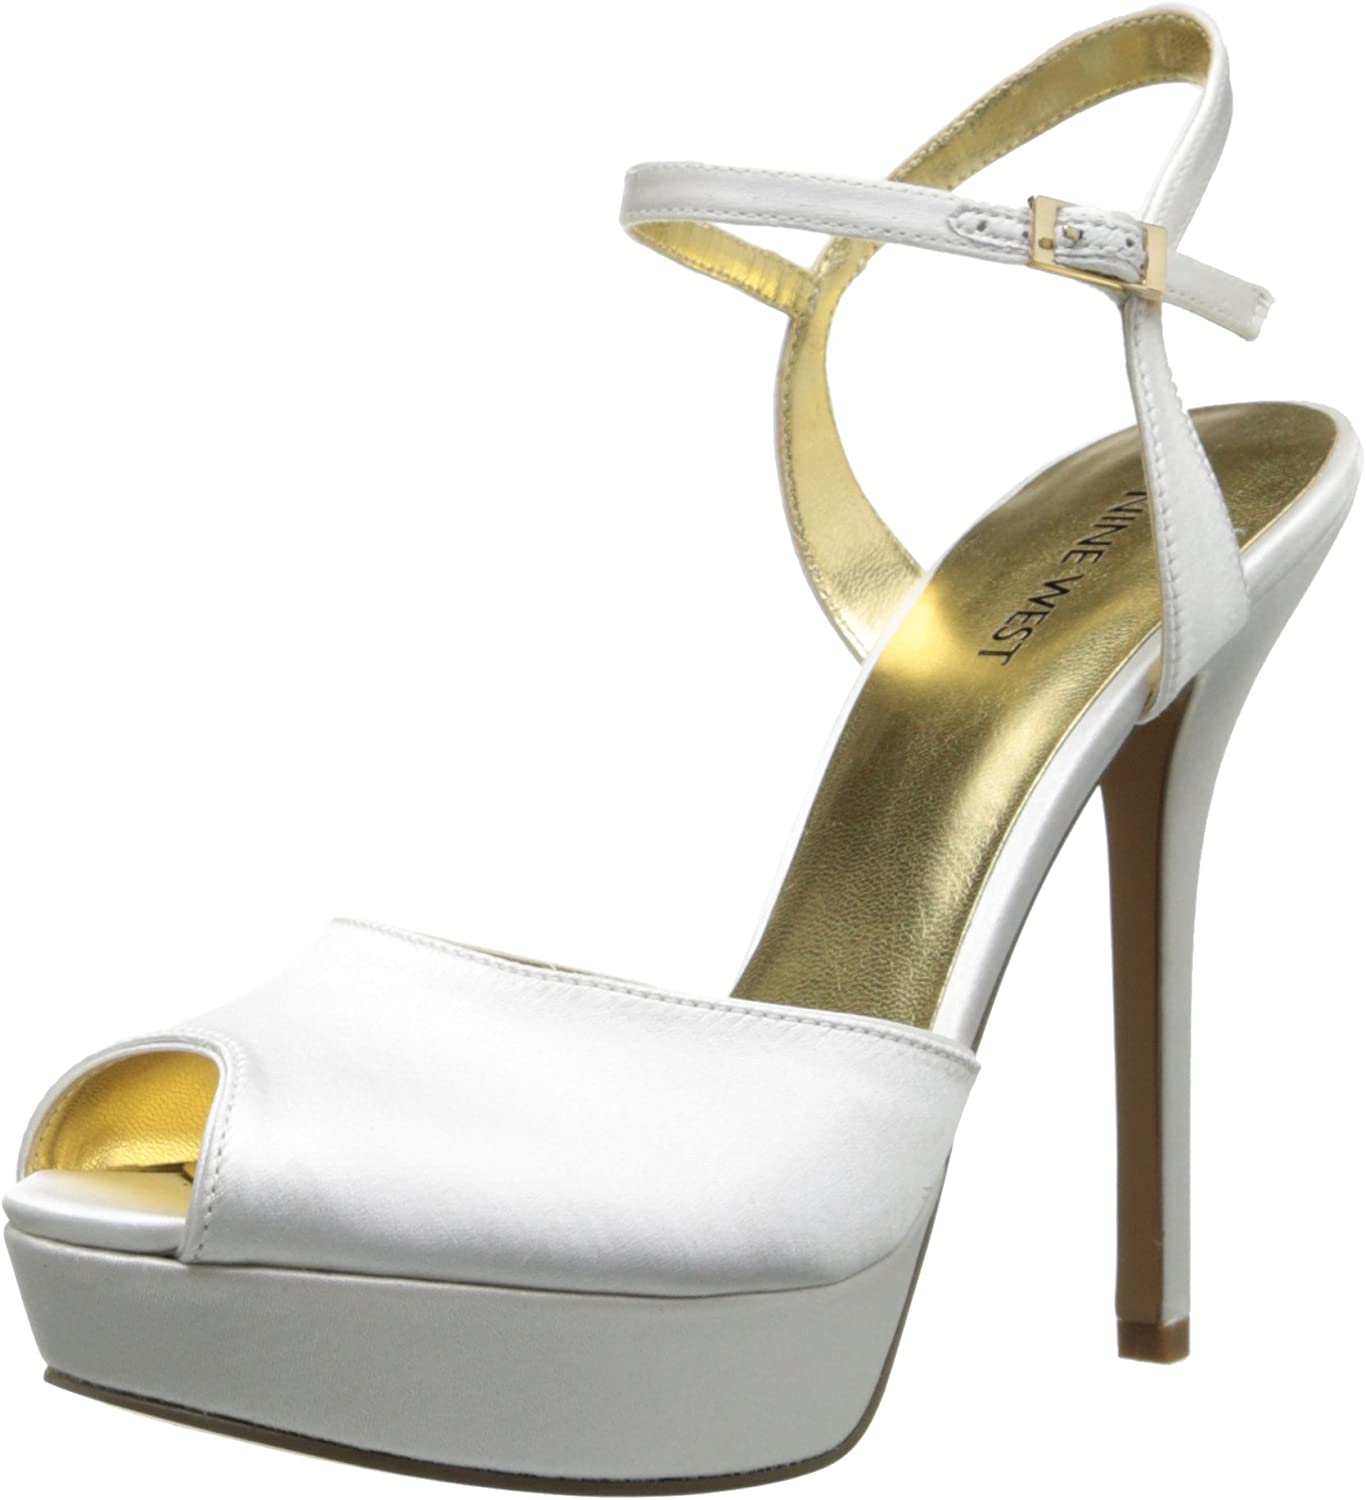 Nine West Women's Rako Heeled Sandal